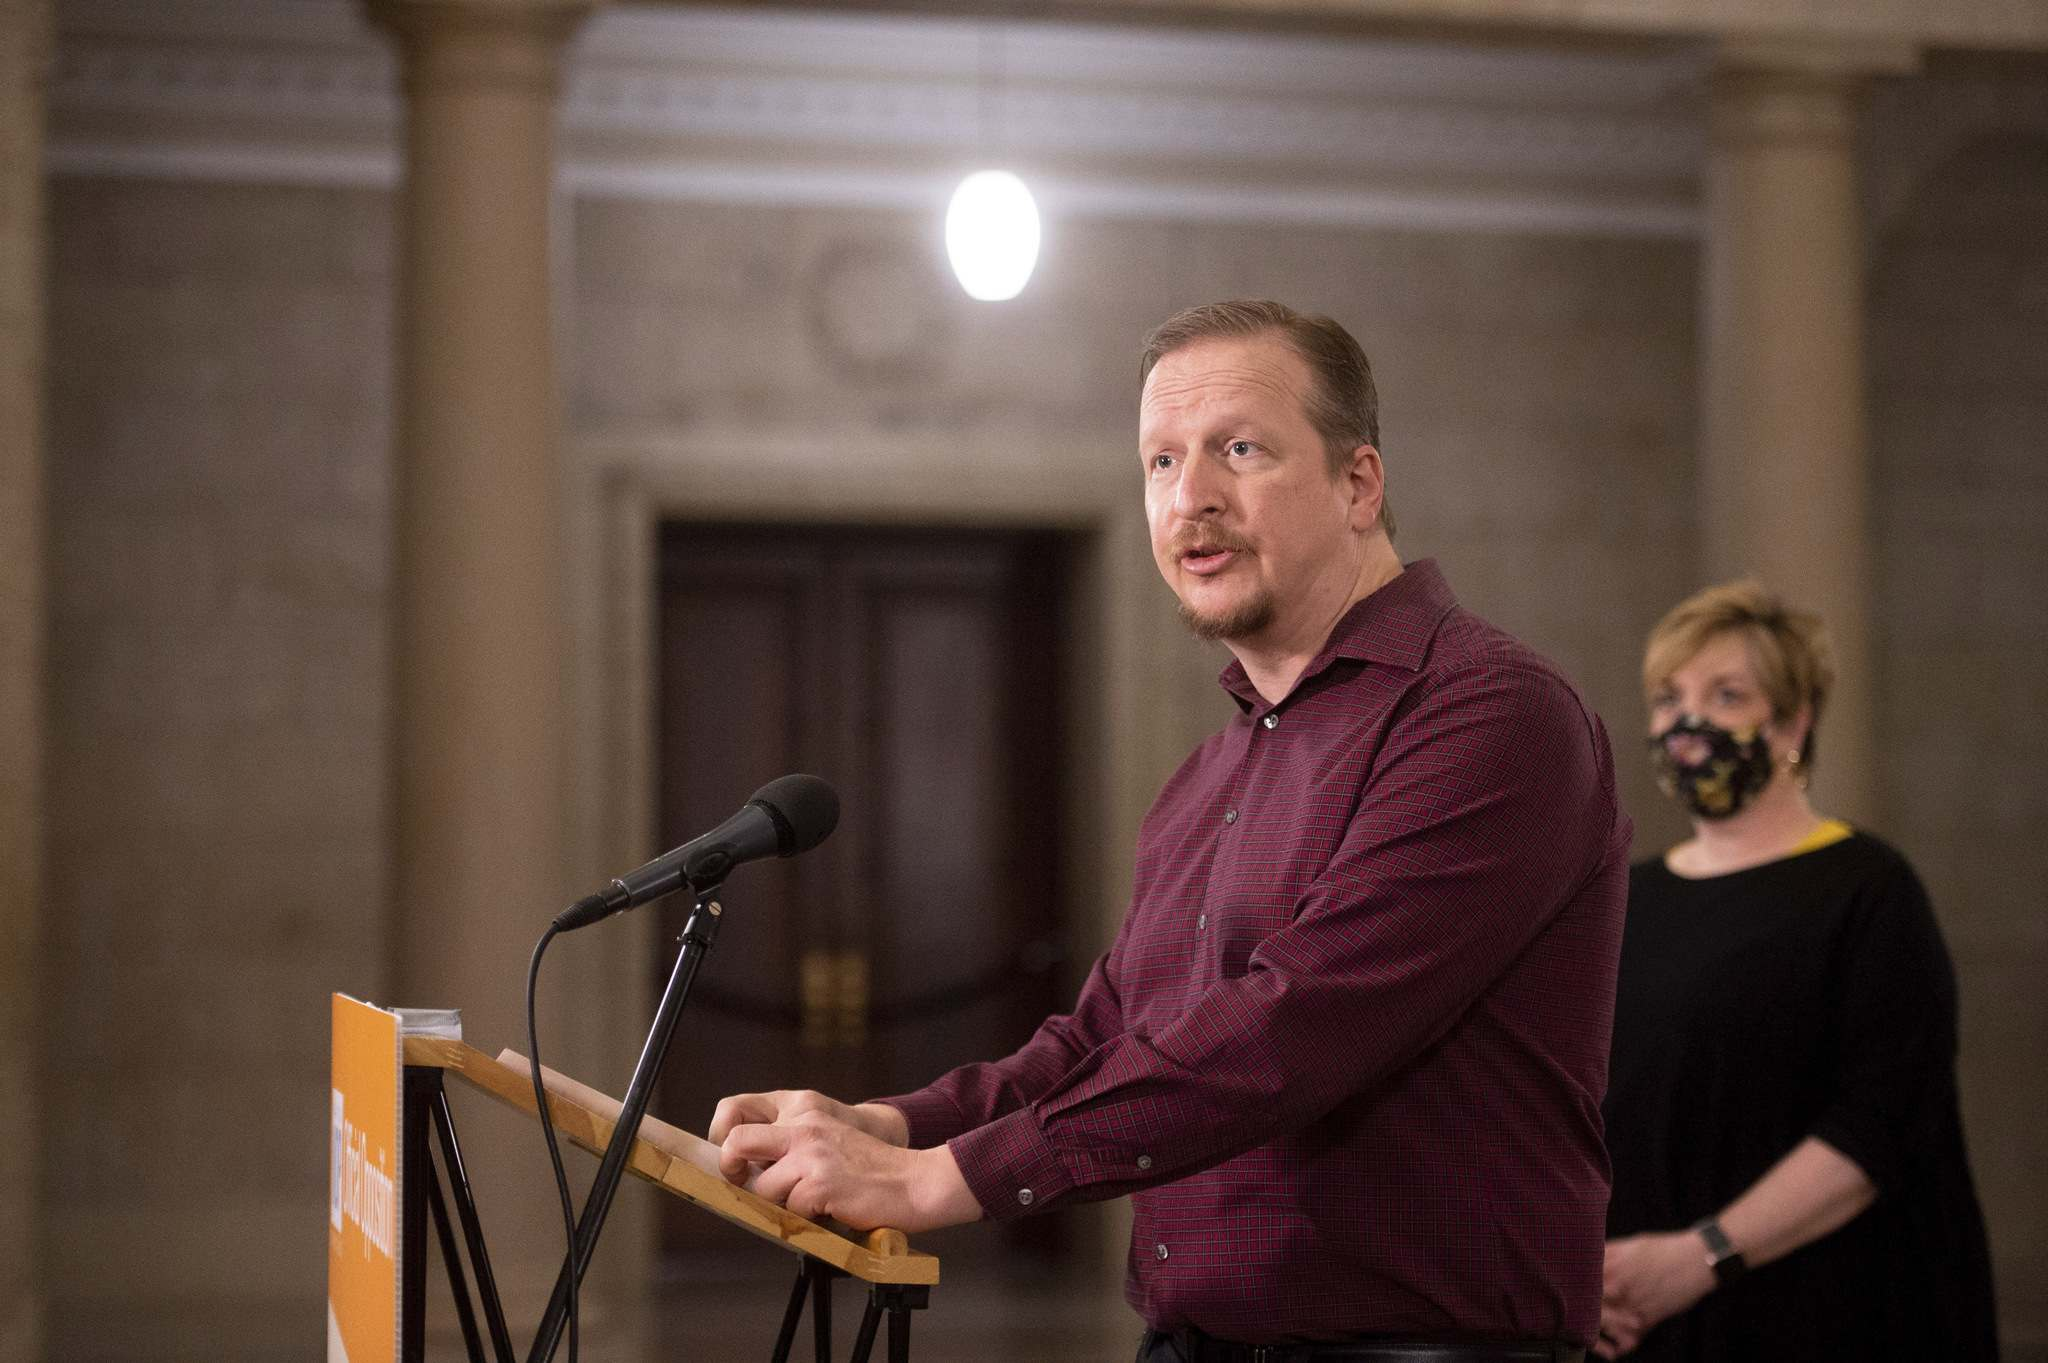 """""""We're considering all our options, including the real possibility of appealing this to the Supreme Court,"""" Manitoba Federation of Labour president Kevin Rebeck said late Wednesday."""